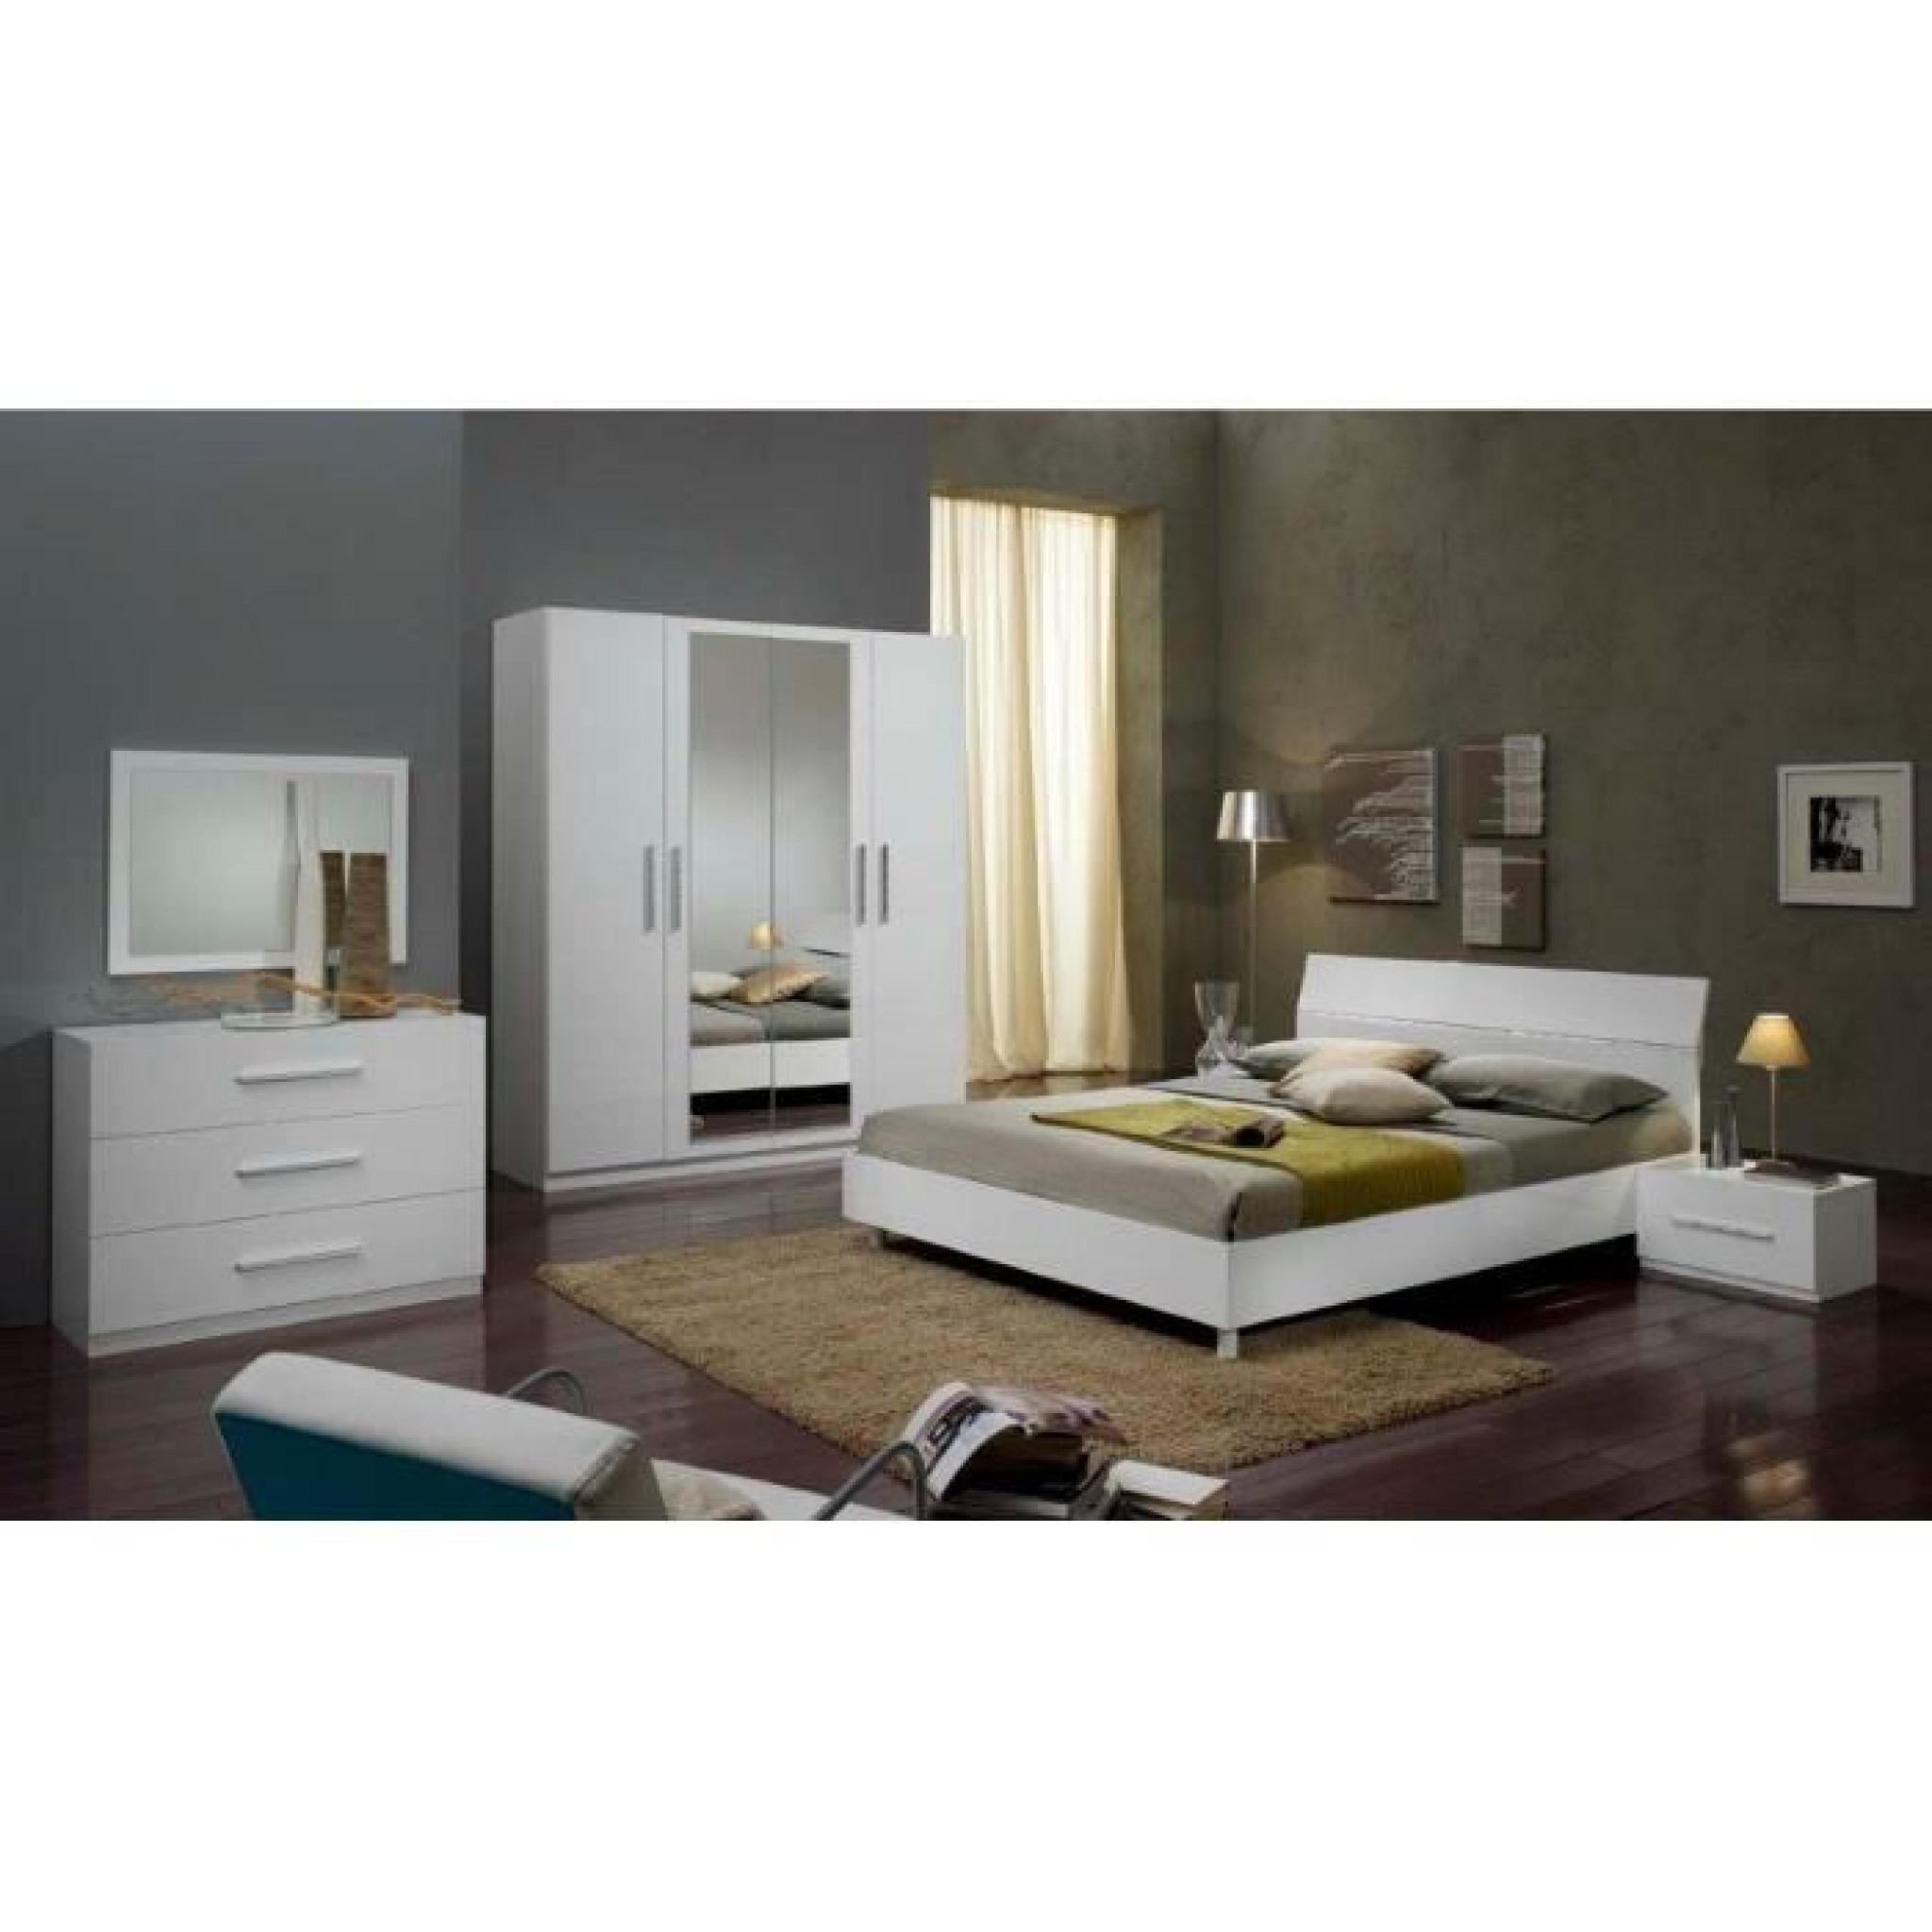 exemple chambre blanche. Black Bedroom Furniture Sets. Home Design Ideas